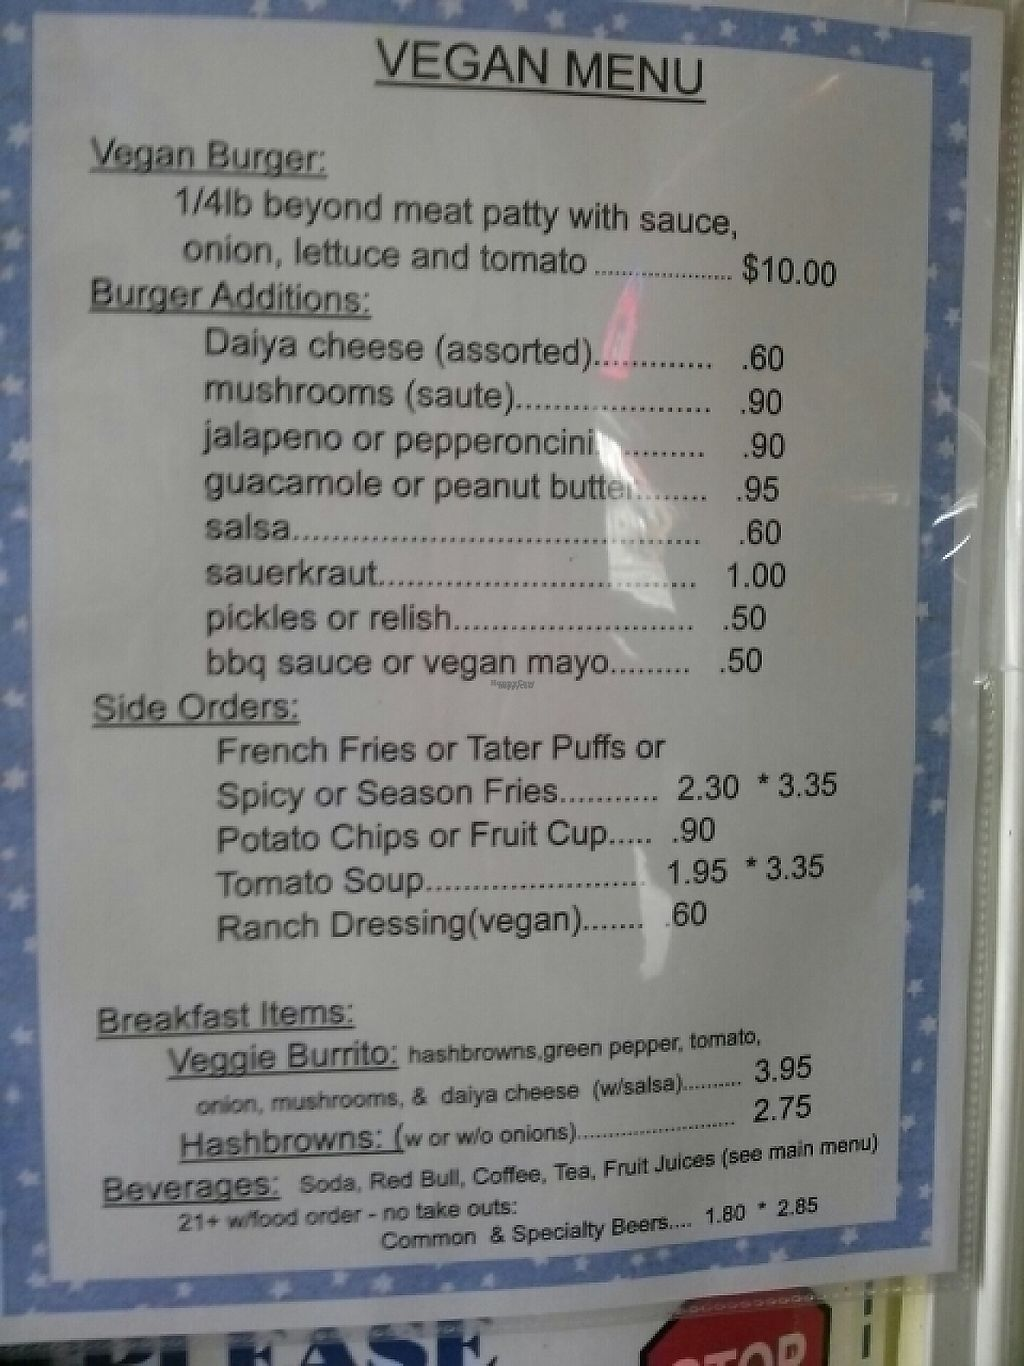 """Photo of Jim Dandy Restaurant   by <a href=""""/members/profile/Shanimal"""">Shanimal</a> <br/>Vegan menu (4/6/17) <br/> April 6, 2017  - <a href='/contact/abuse/image/88562/245282'>Report</a>"""